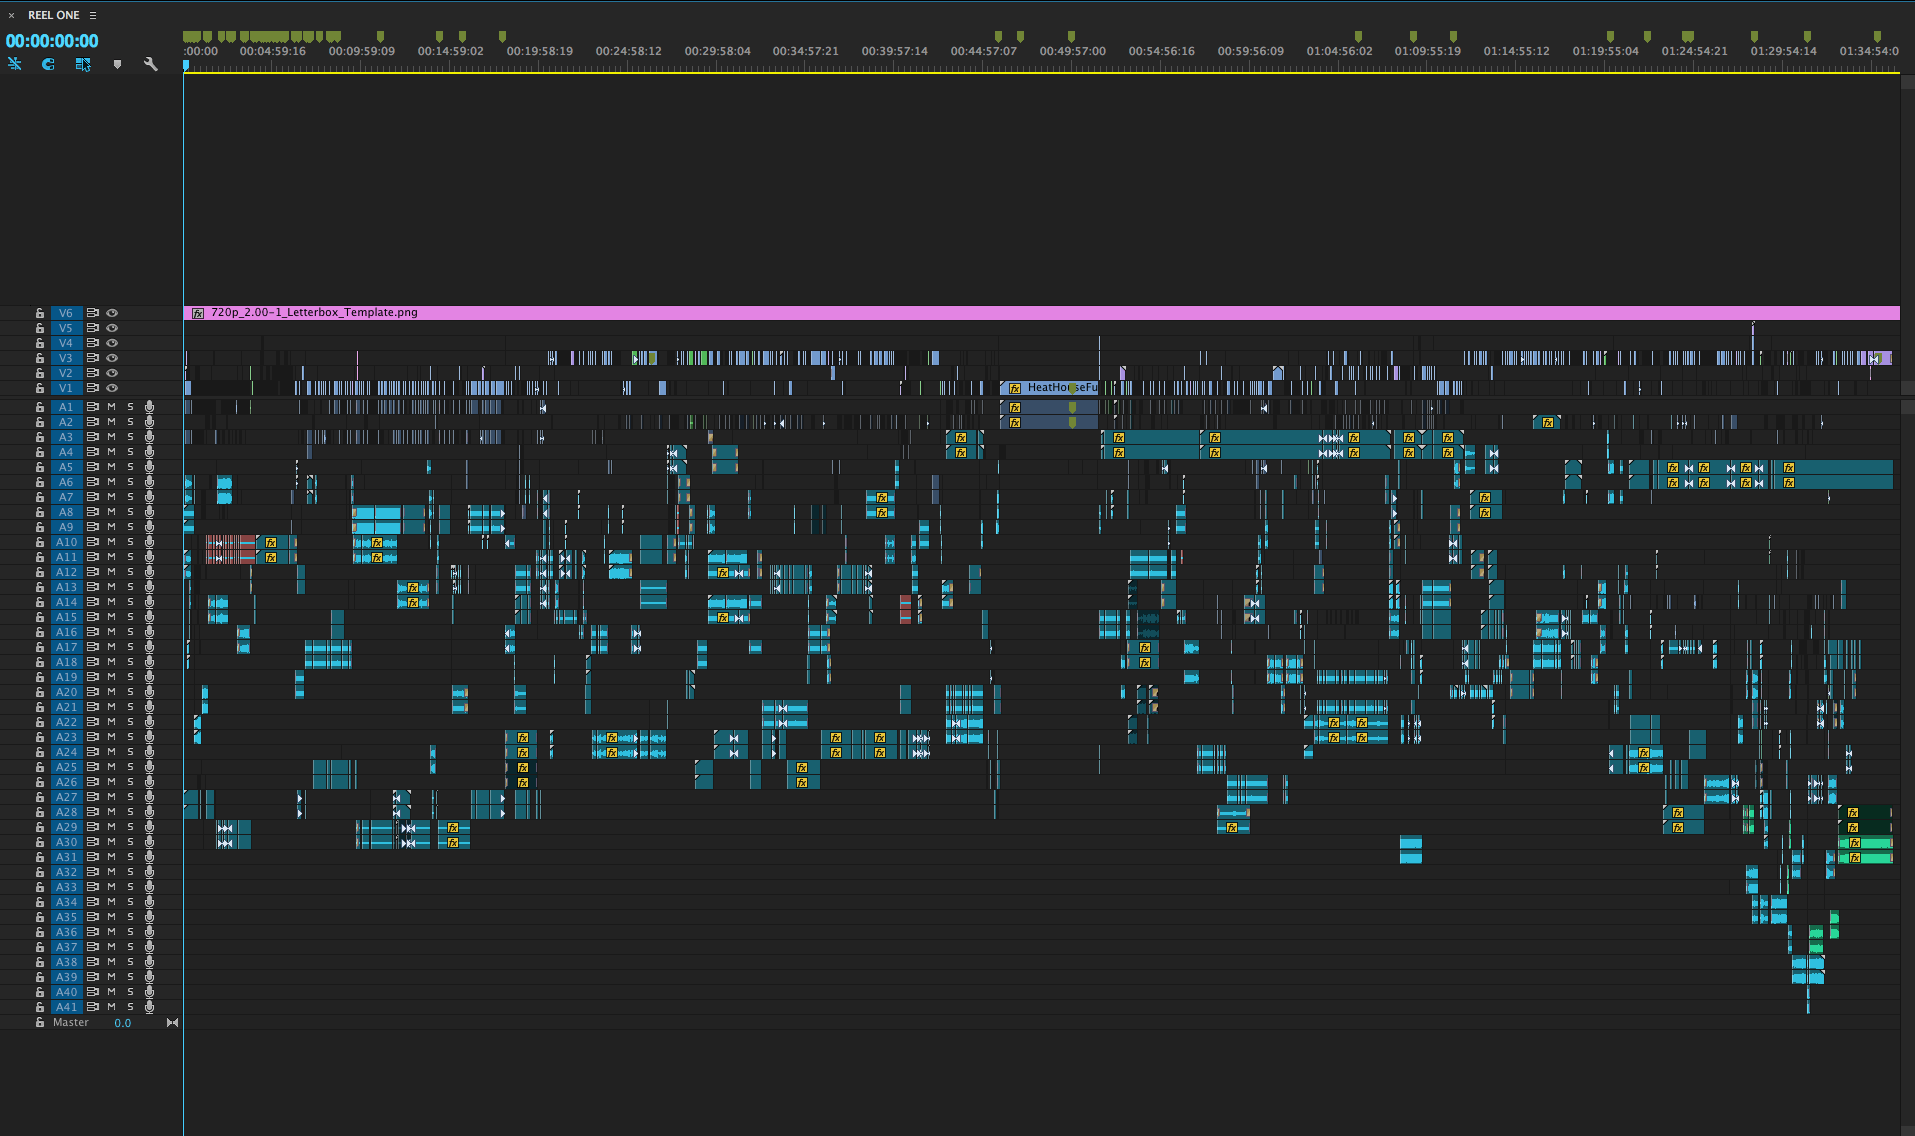 After effects plugins archives blog the entire 95 minute timeline in adobe premiere spiritdancerdesigns